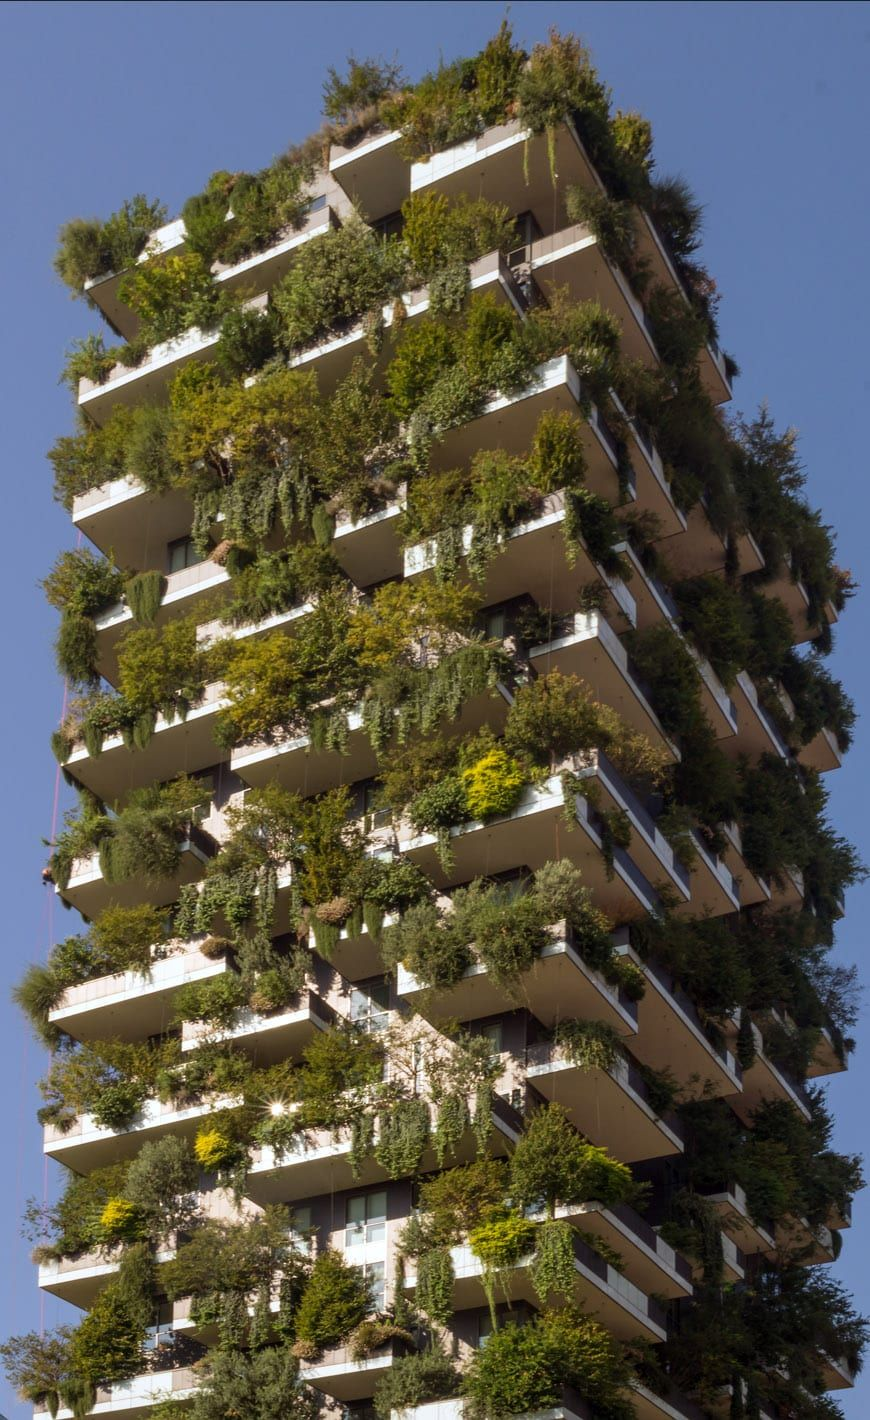 The Vertical Forest towers in Milan by Boeri. Phenomenon